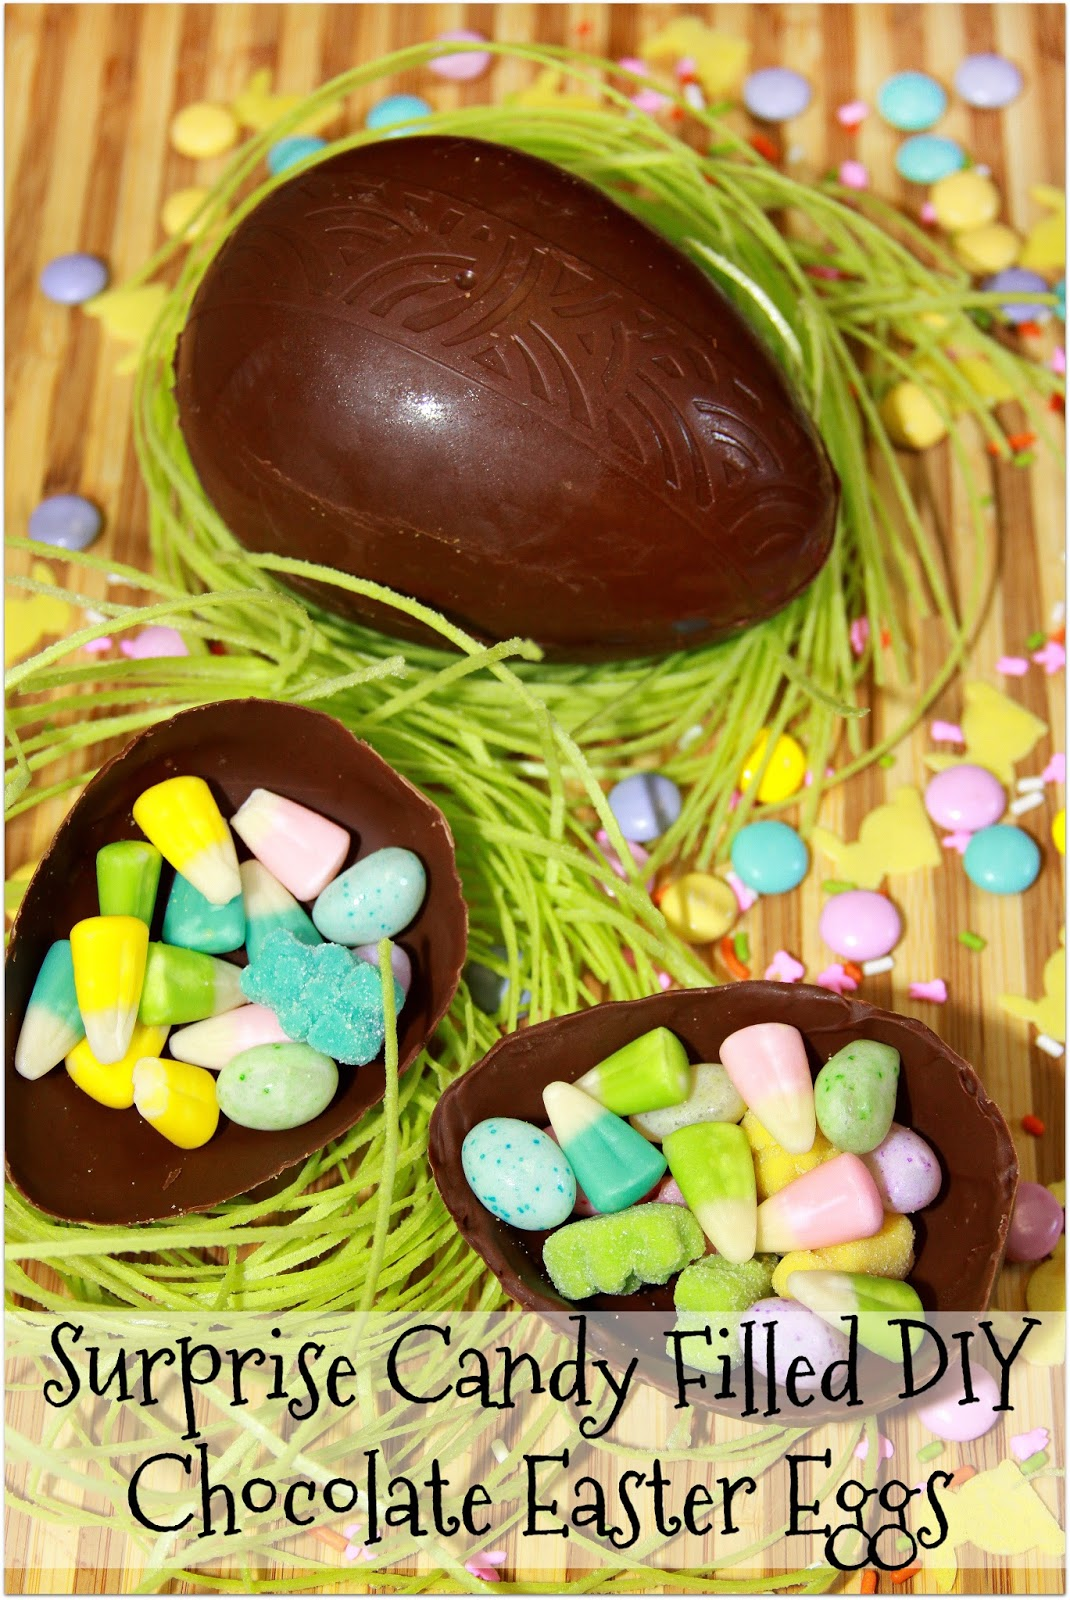 Easter Candy Eggs: For The Love Of Food: Surprise Candy Filled DIY Chocolate